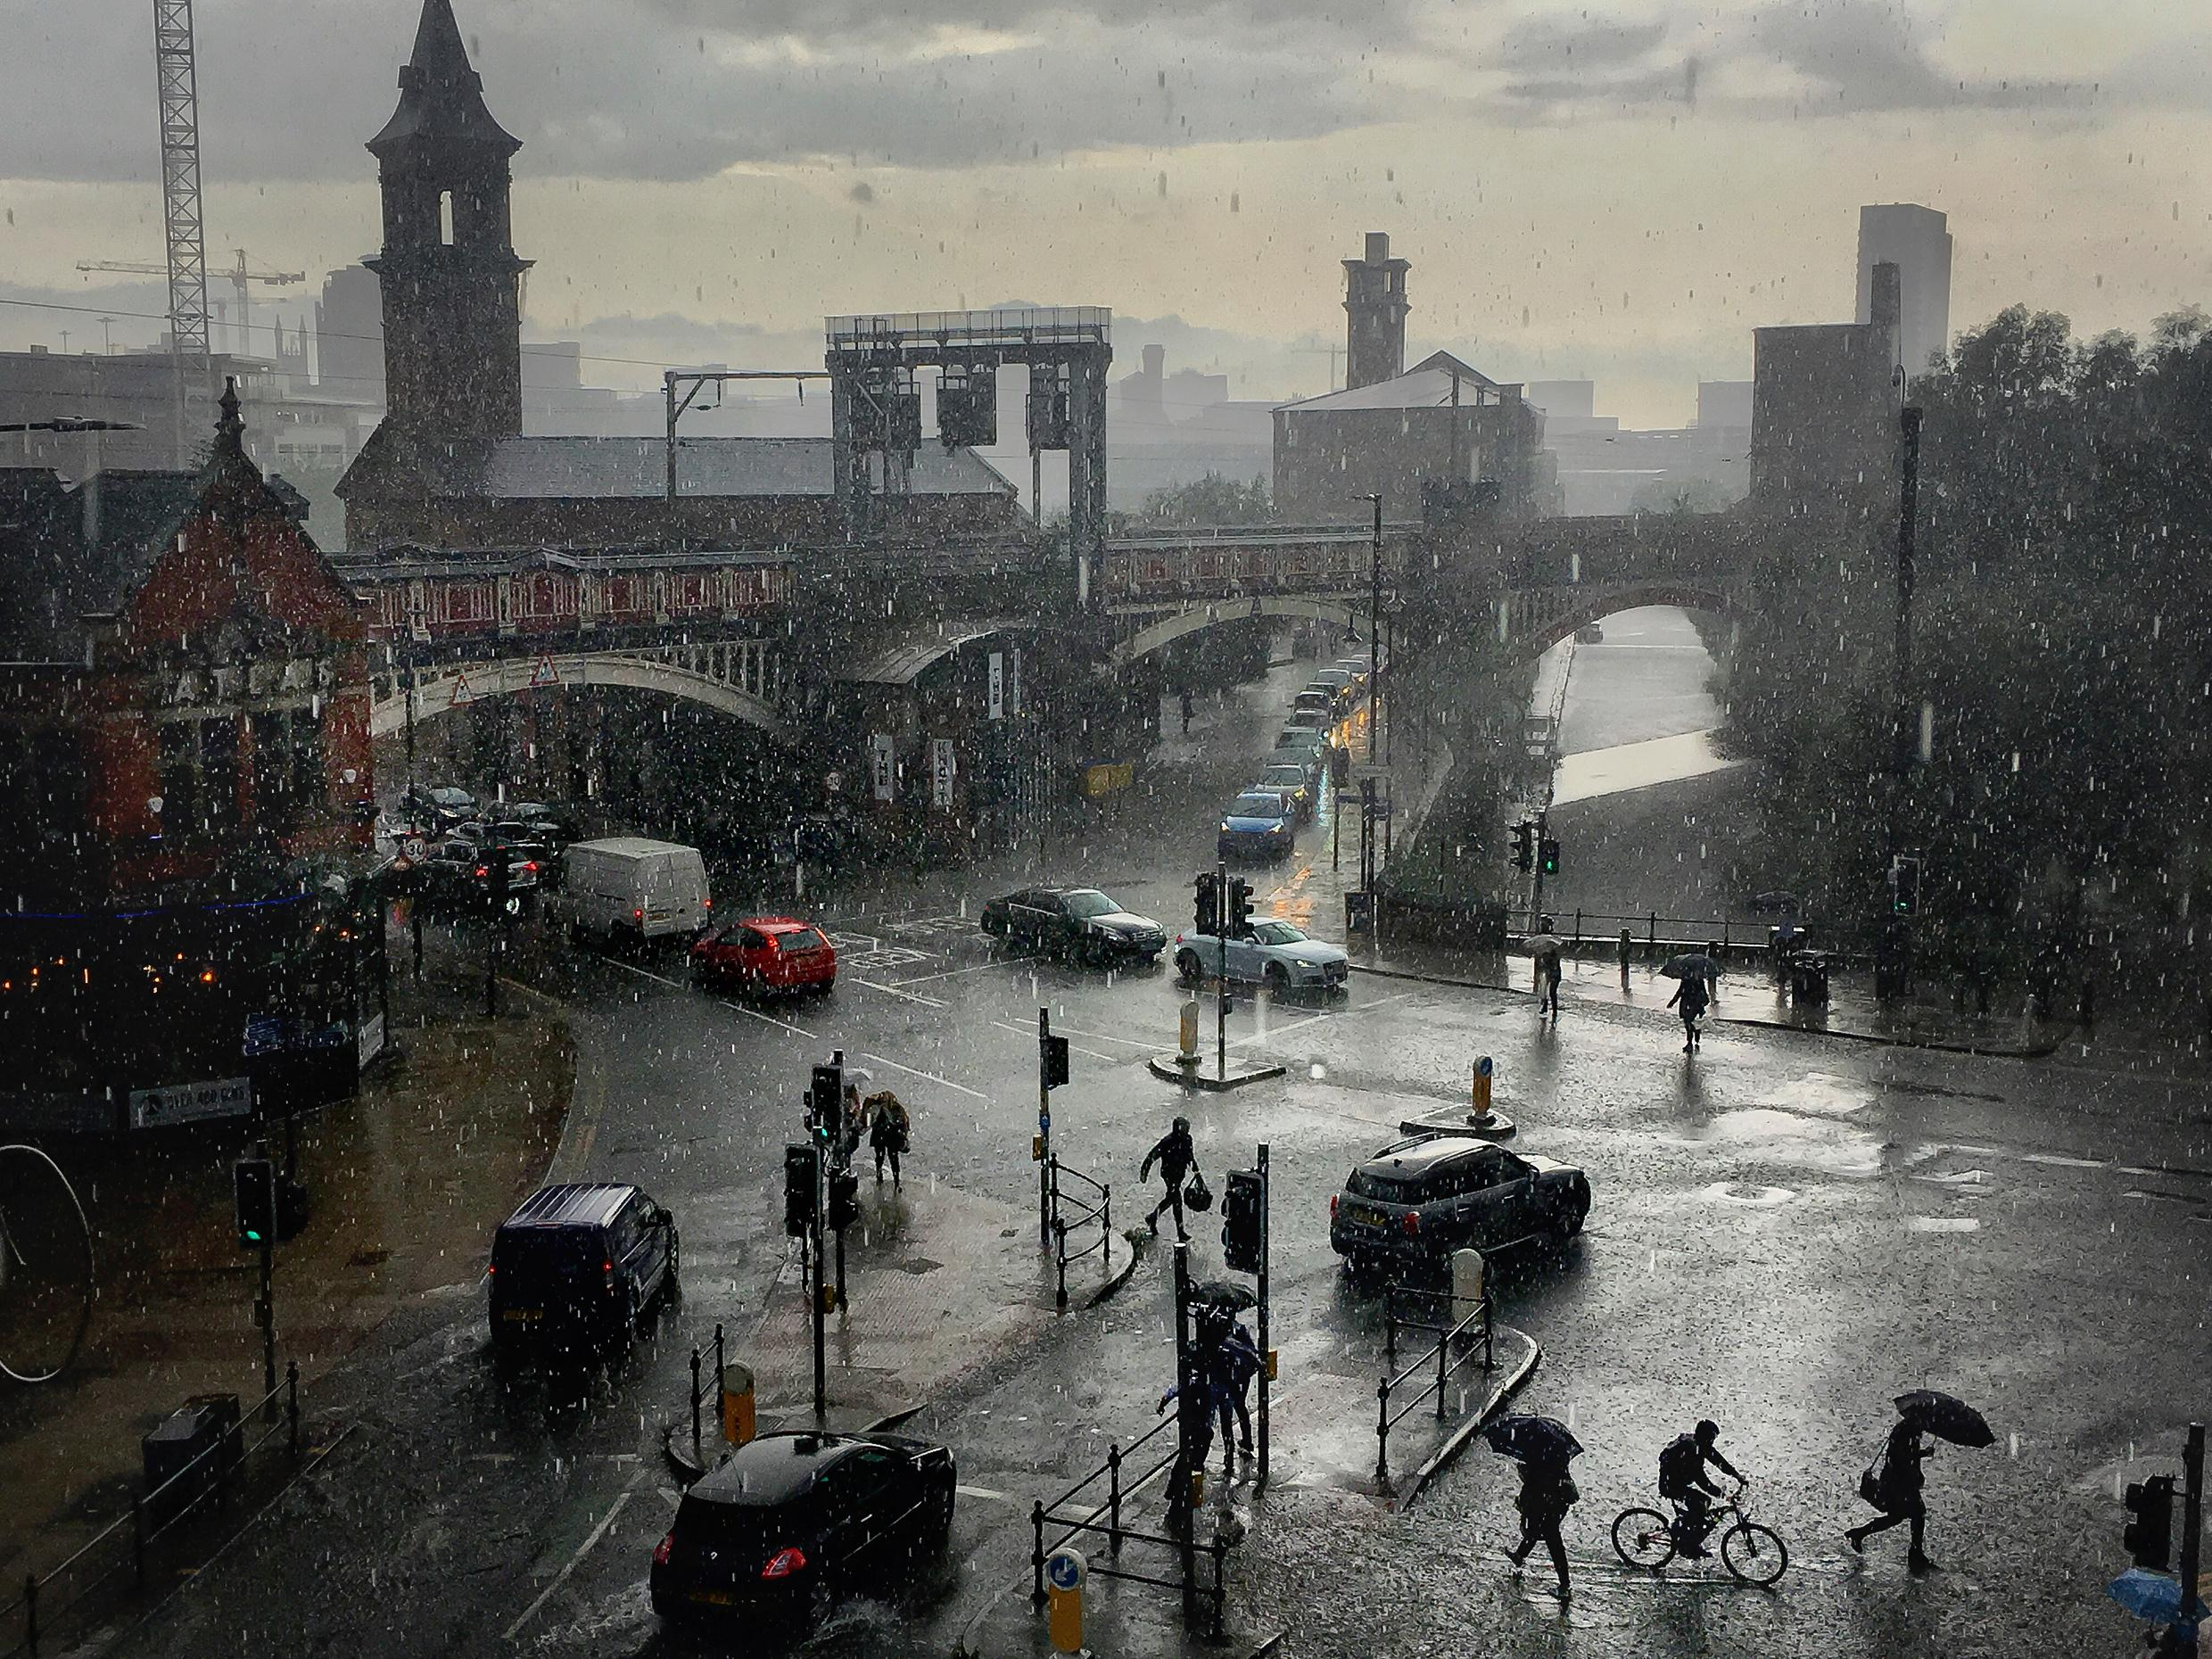 The big picture: Manchester captured in the rain evokes Lowry